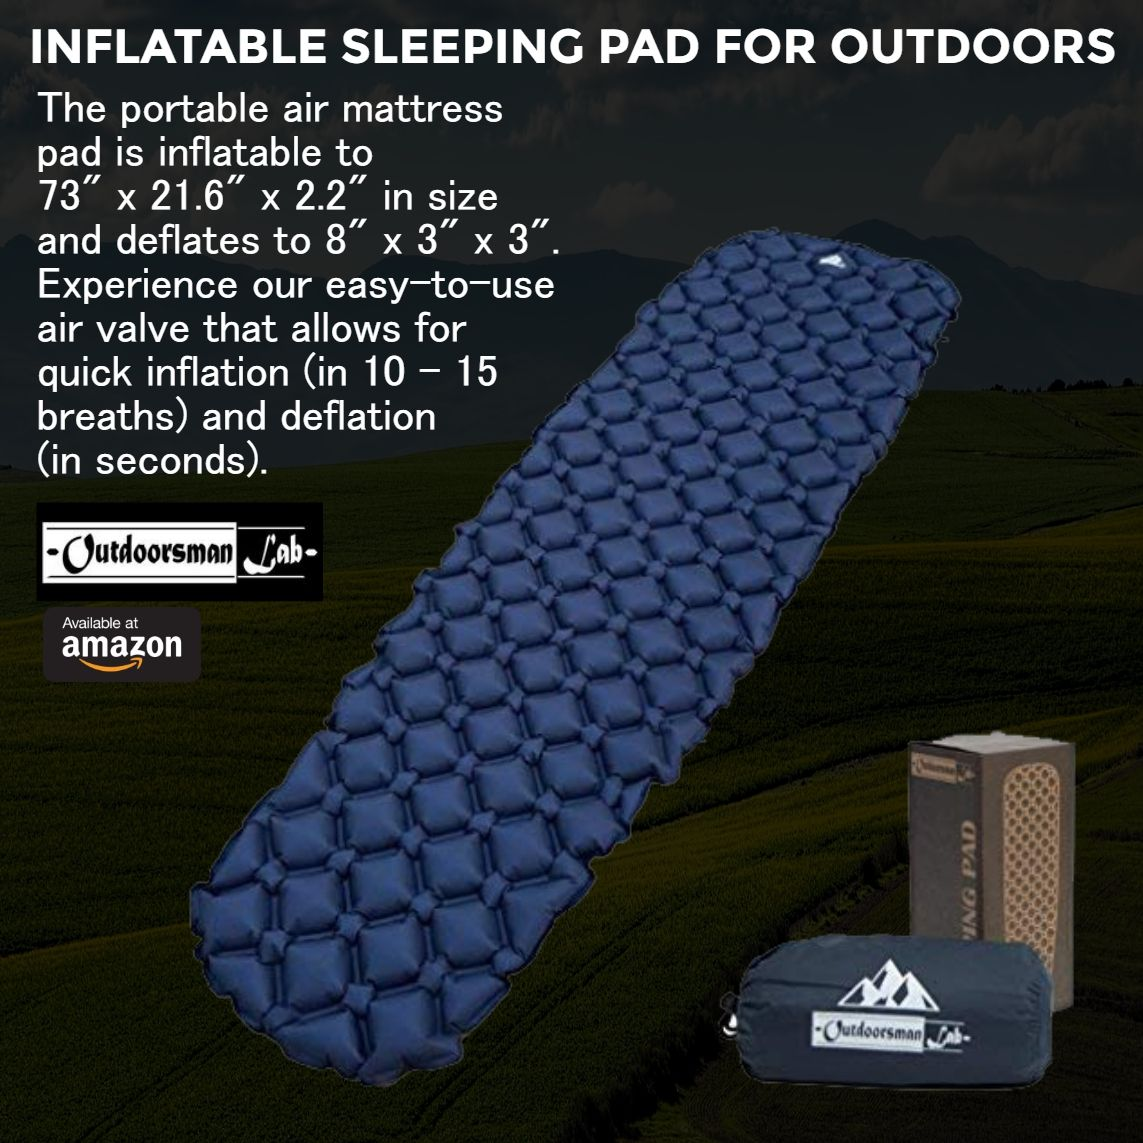 Inflatable Sleeping Pad For Outdoors The Portable Air Mattress Is To 73